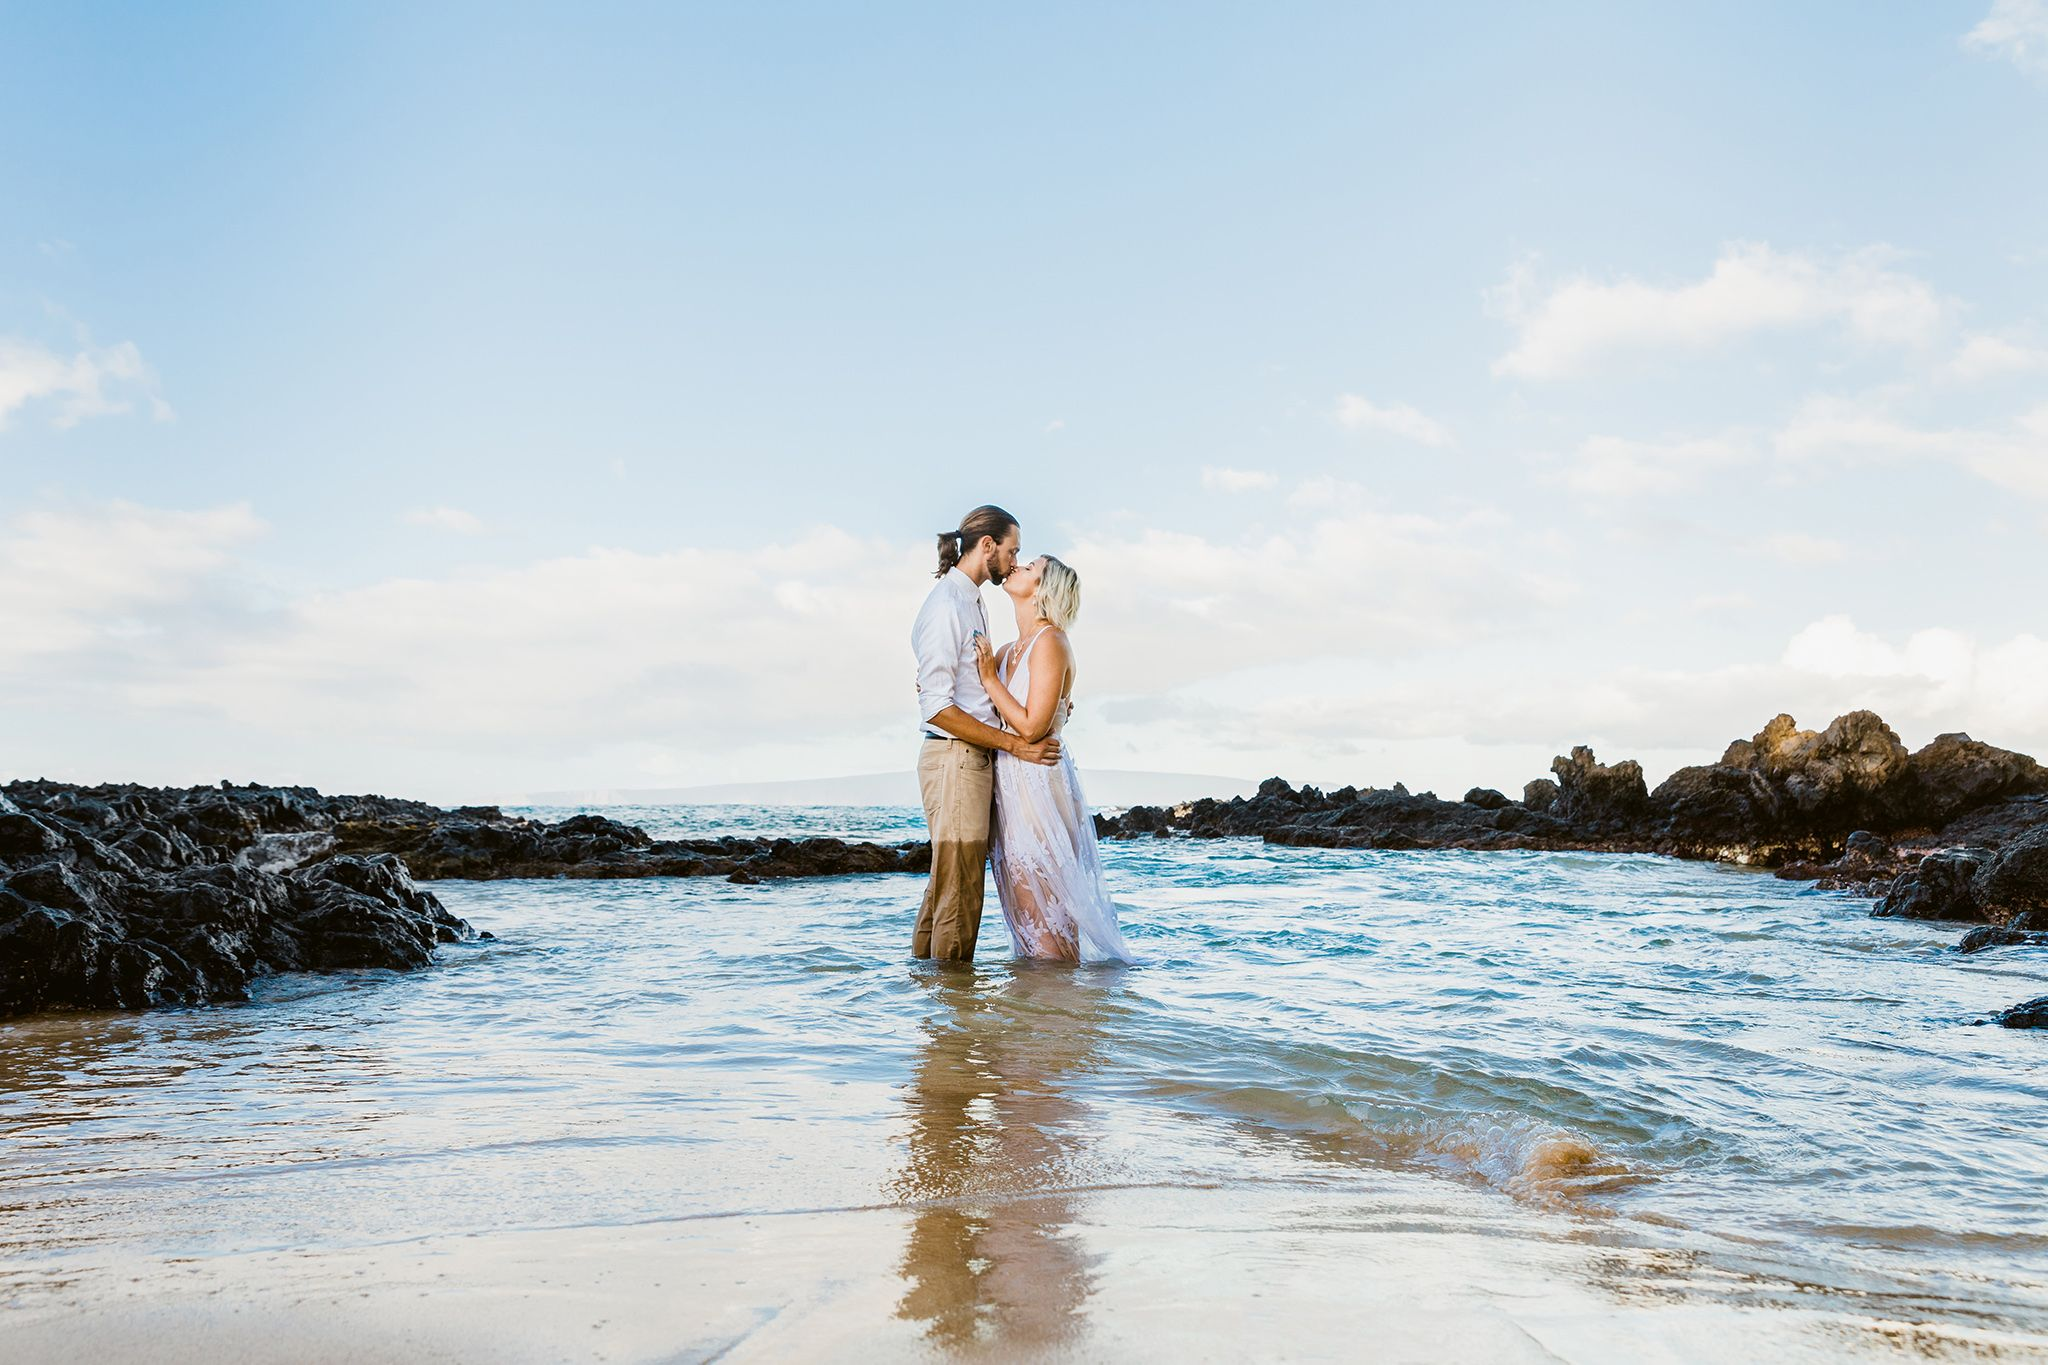 romantic water photoshoots maui